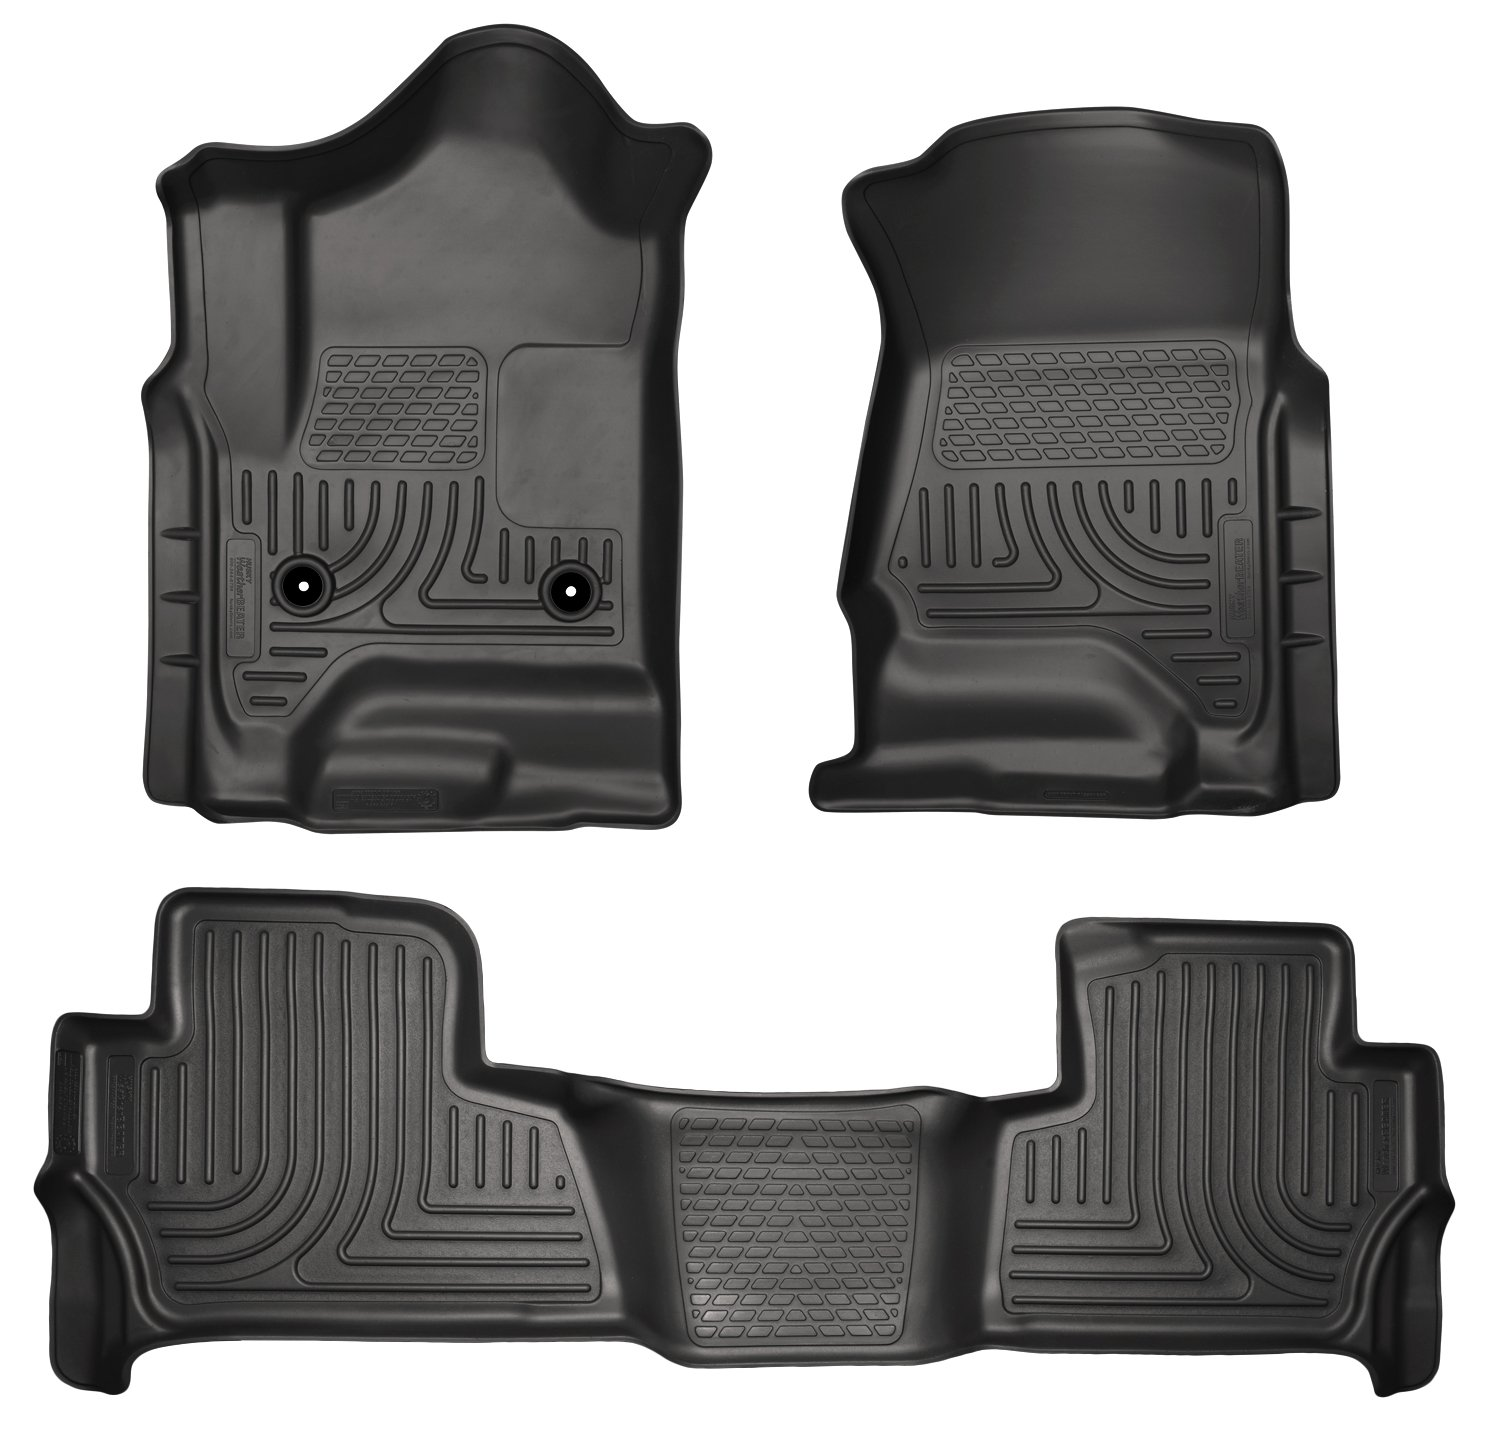 Floor mats yukon 2015 - Amazon Com Husky Weatherbeater Floor Mats Liners Black Front Rear Footwell Coverage Automotive